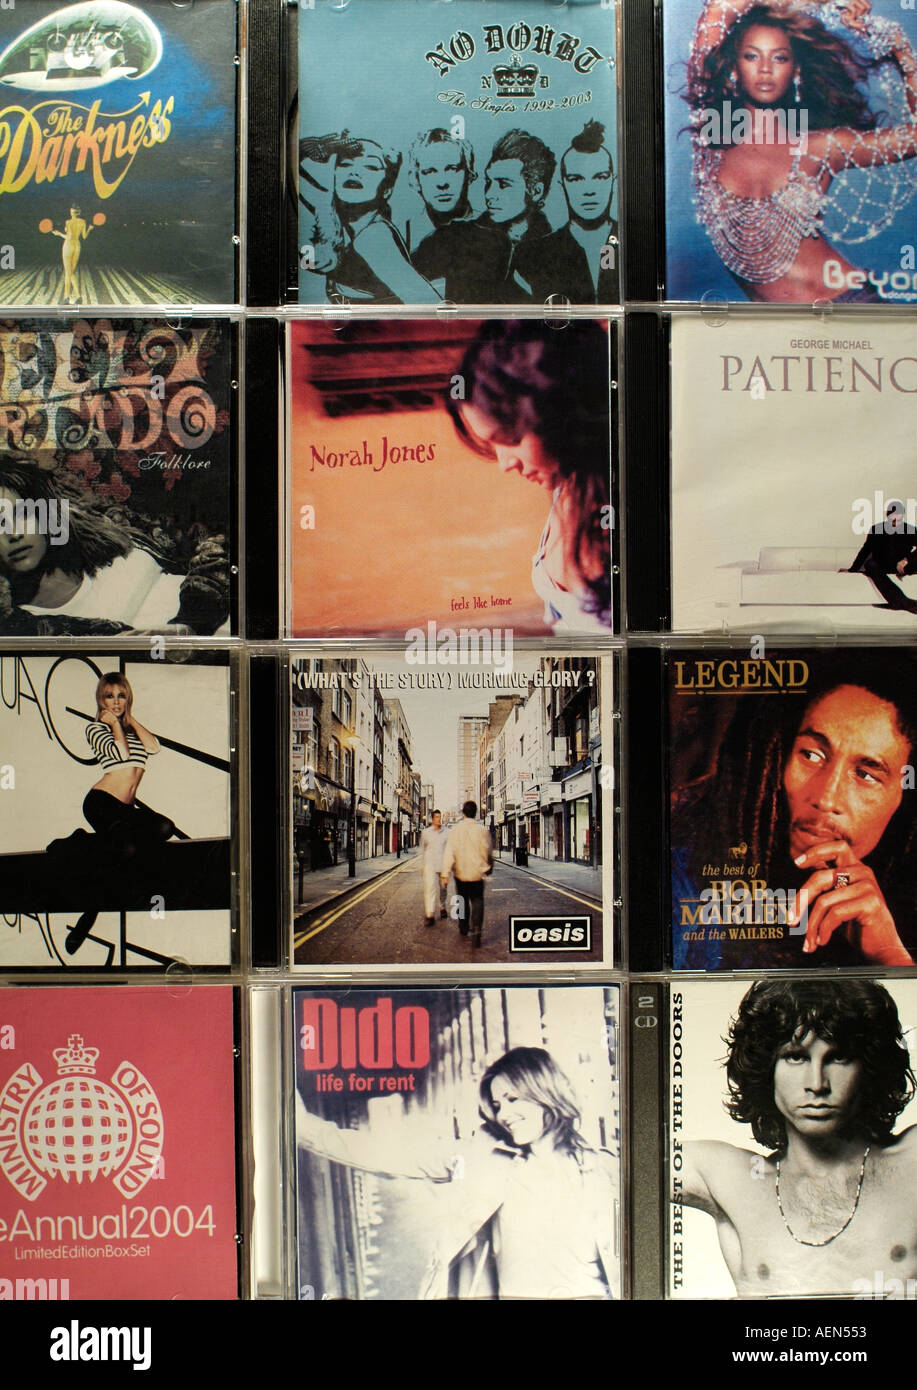 Counterfeit Music CDs for Sale in Eastern Europe, Close Up. - Stock Image